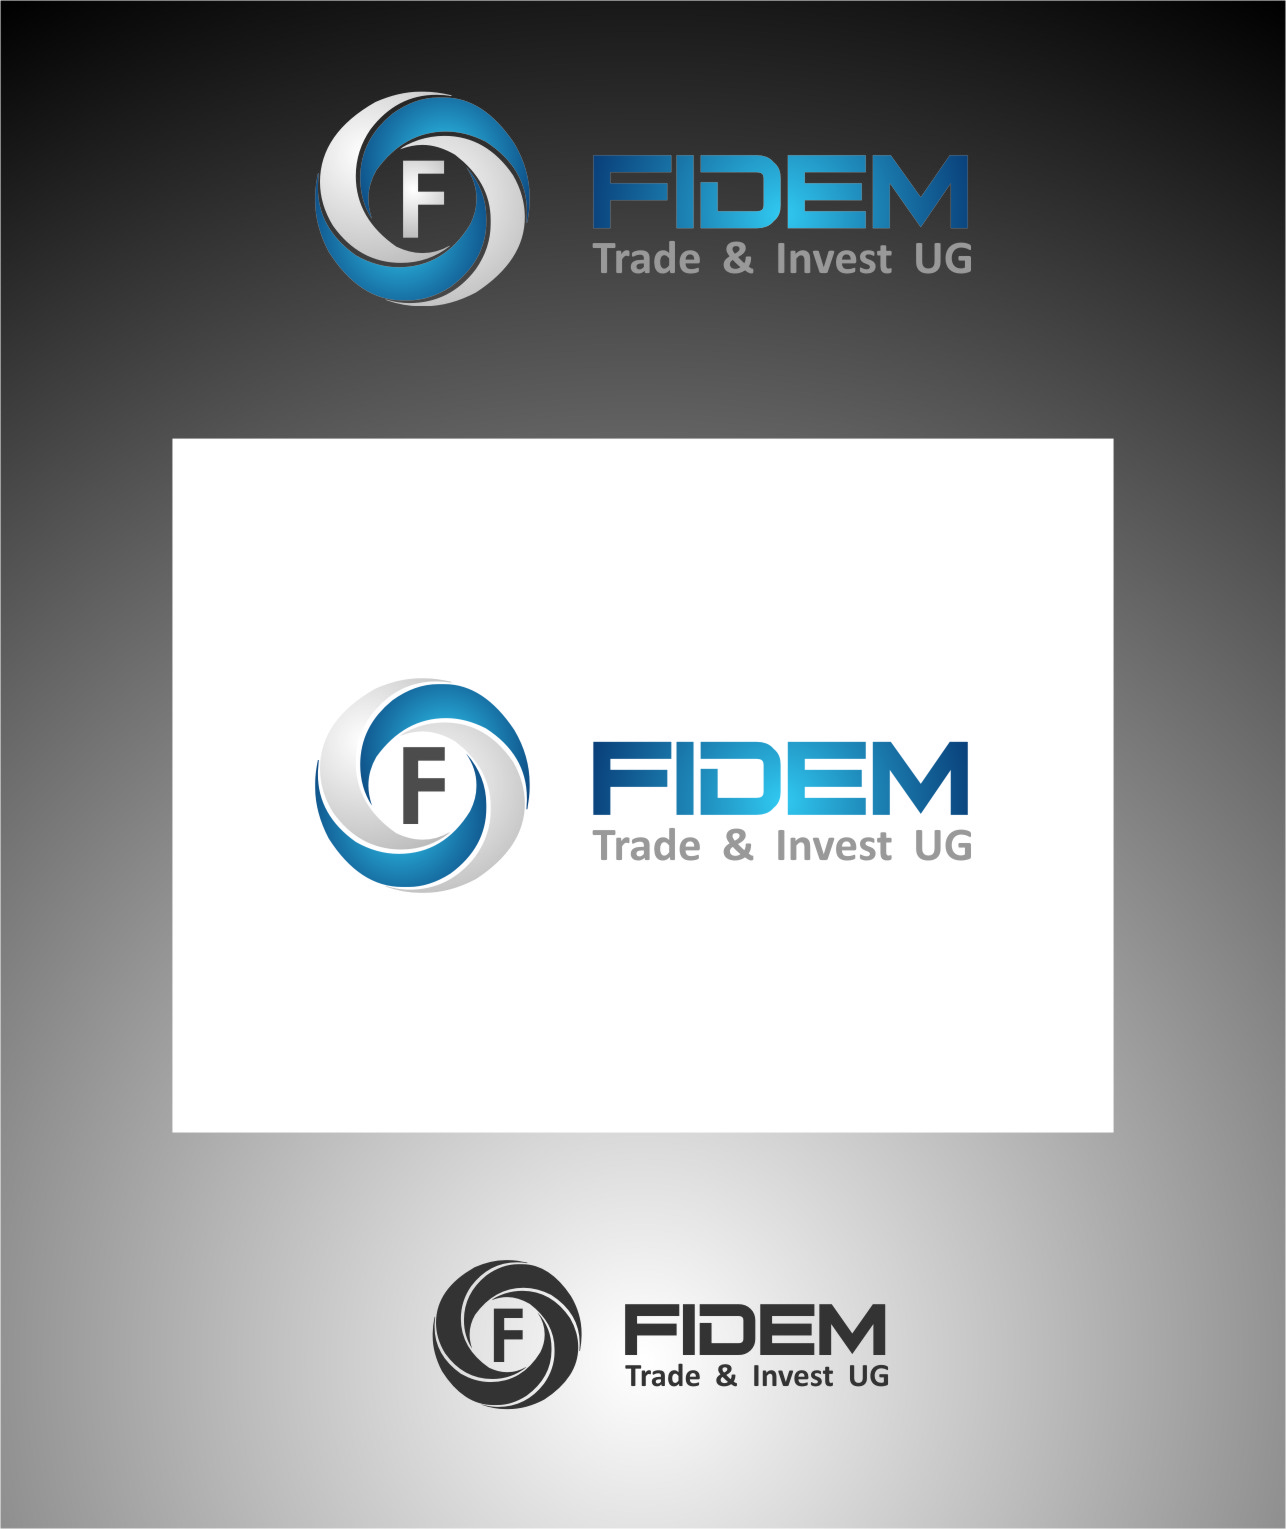 Logo Design by Ngepet_art - Entry No. 175 in the Logo Design Contest Professional Logo Design for FIDEM Trade & Invest UG.